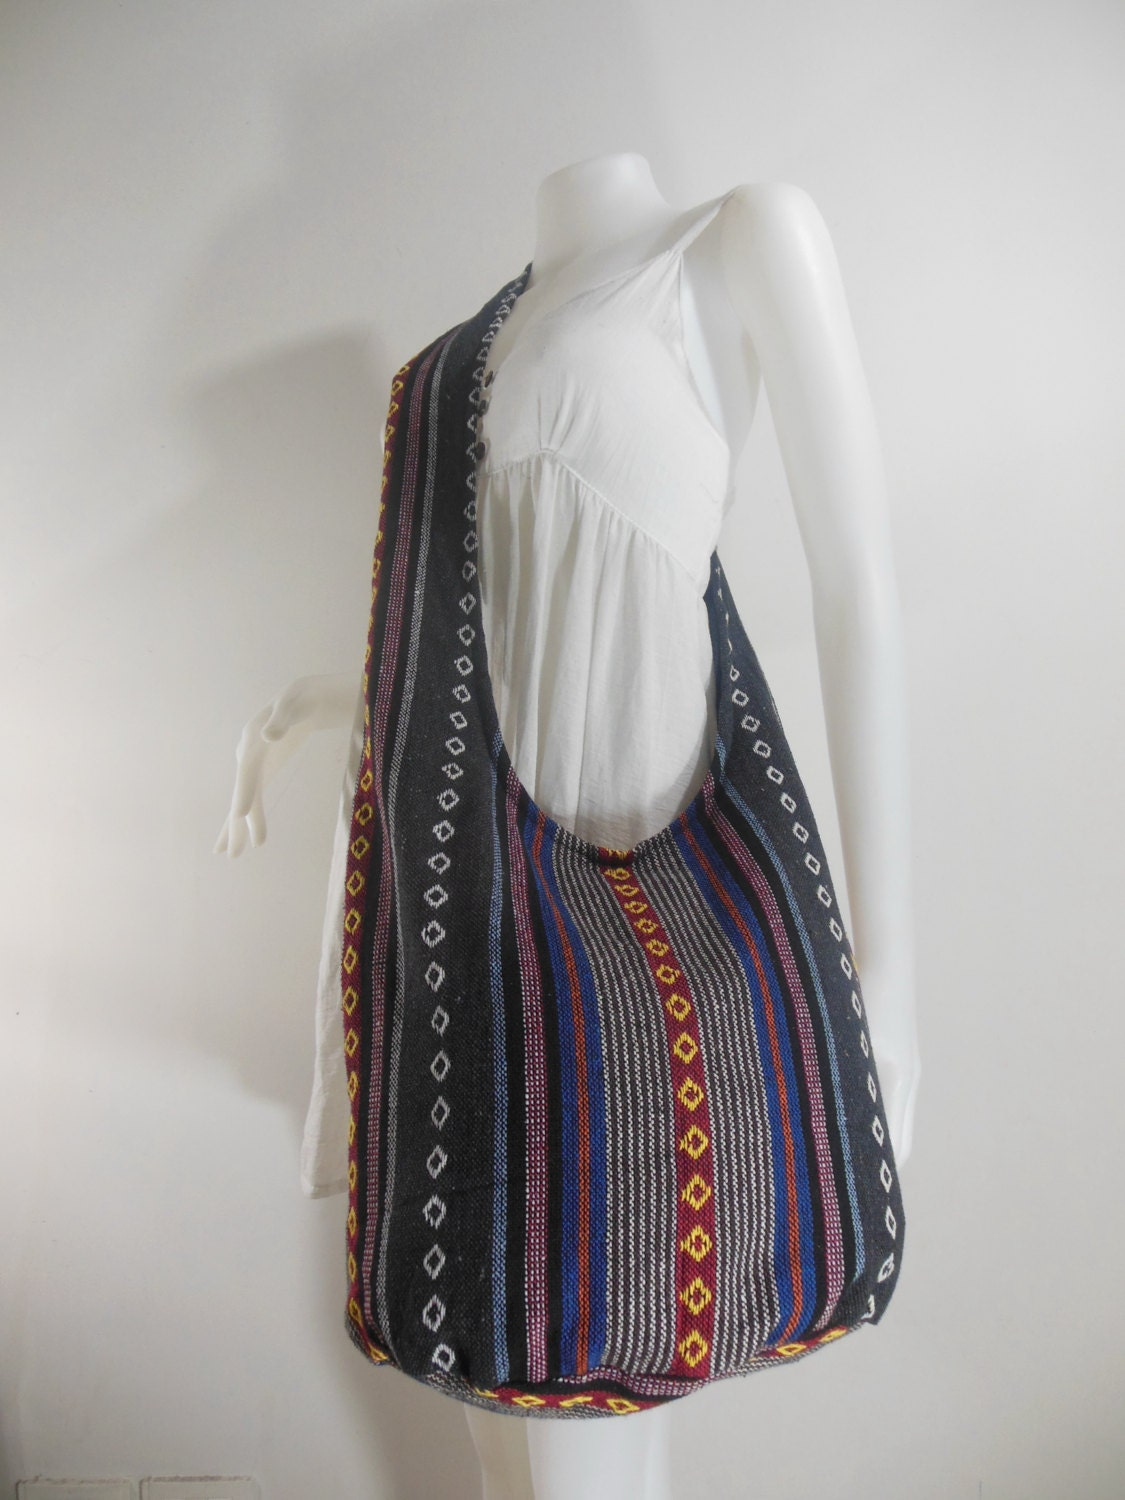 Handbag Hippie Hobo Cross body Messenger Boho Bag Hmong Purse